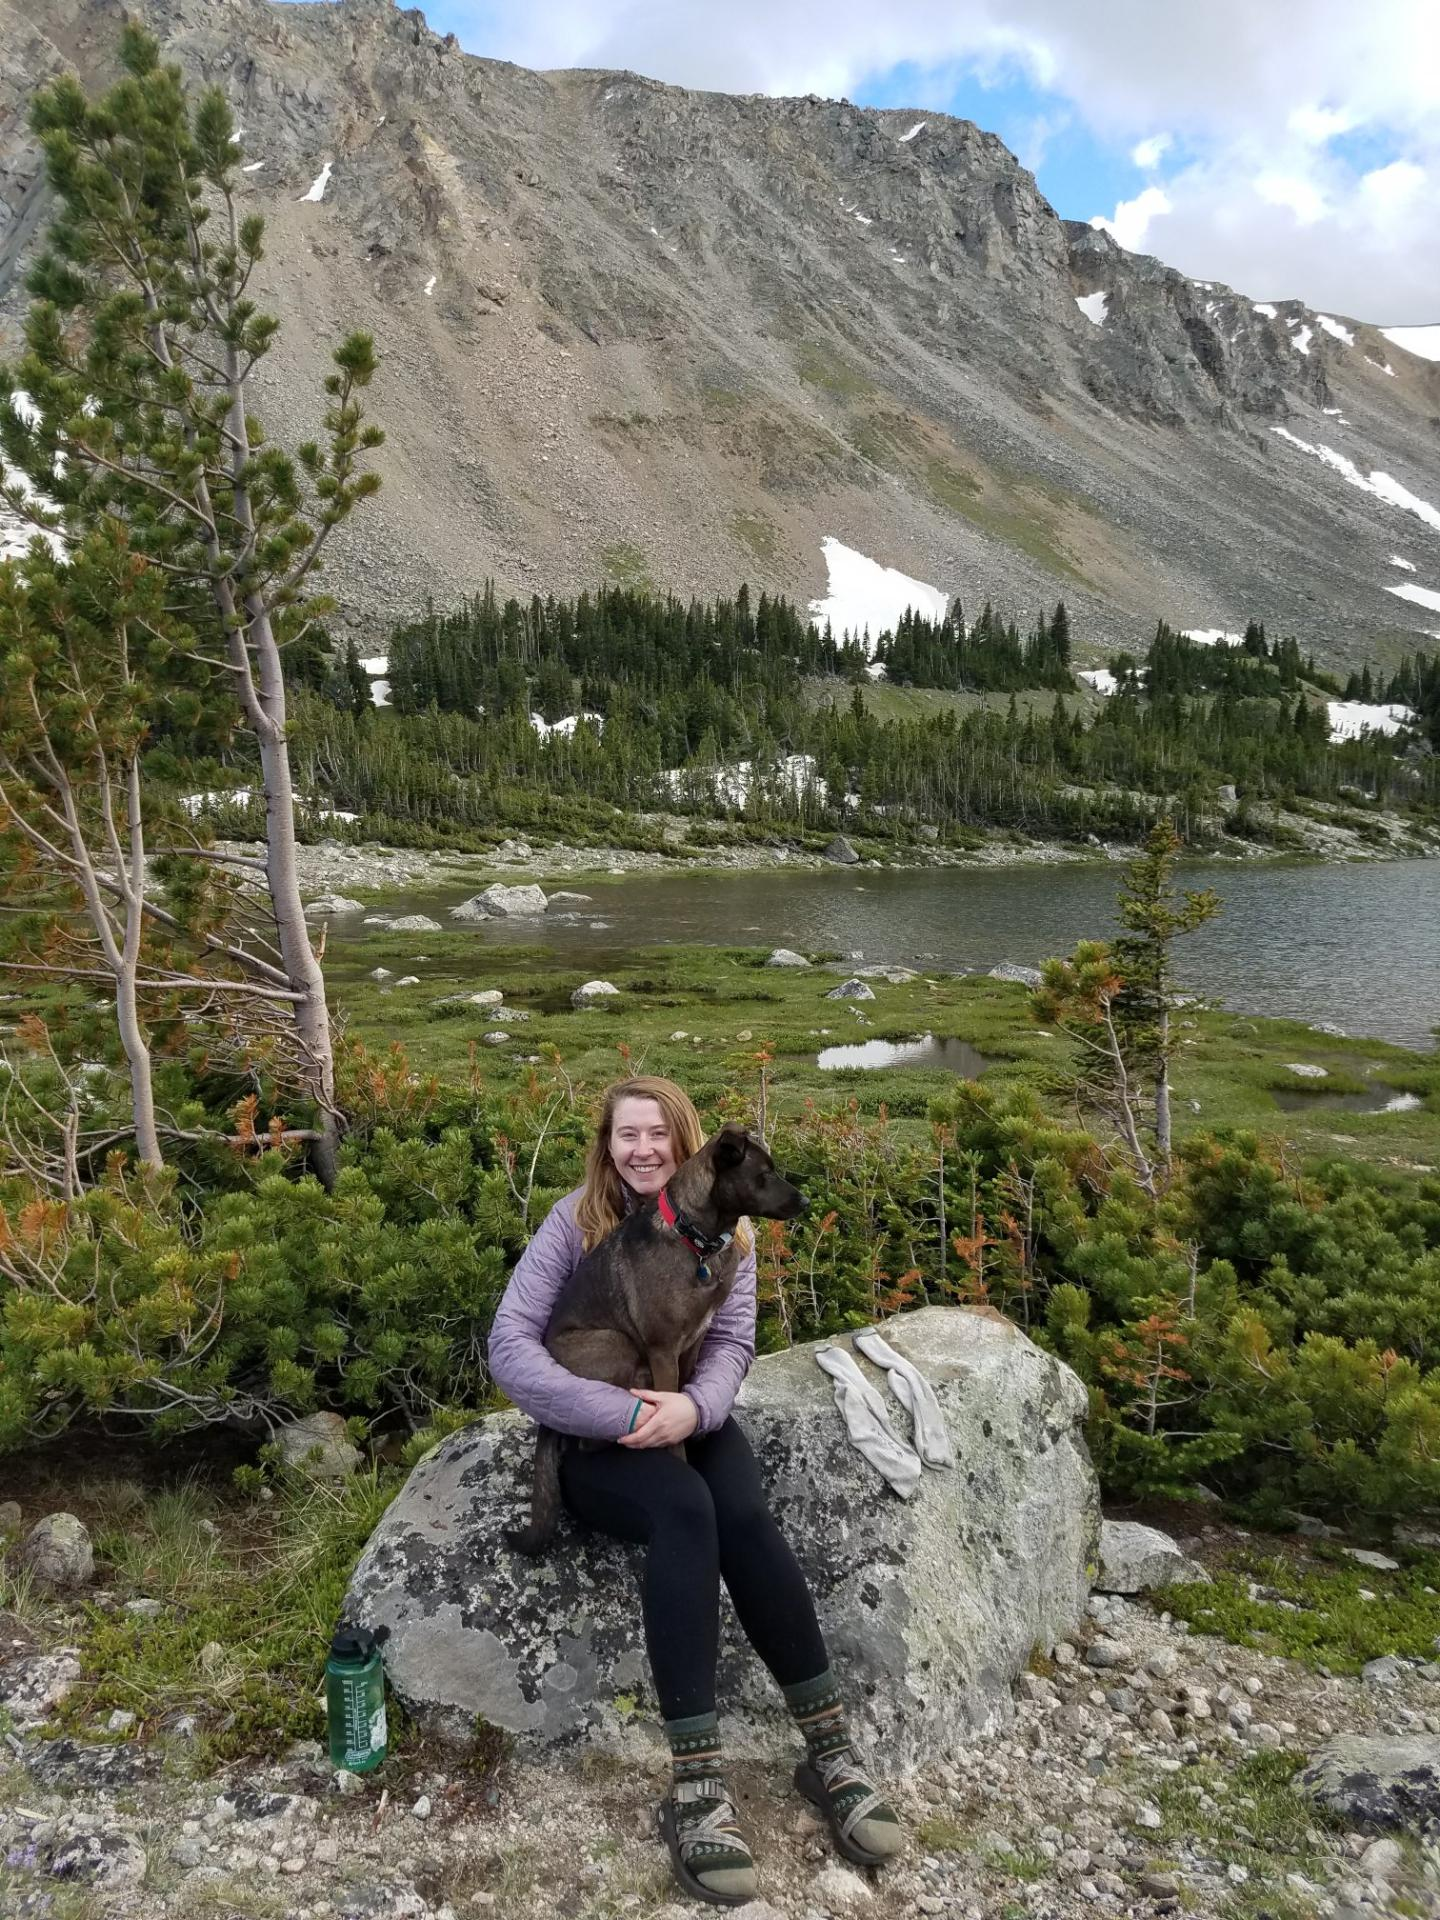 Picture of Katelynne Cowart sitting on a rock with mountain in background